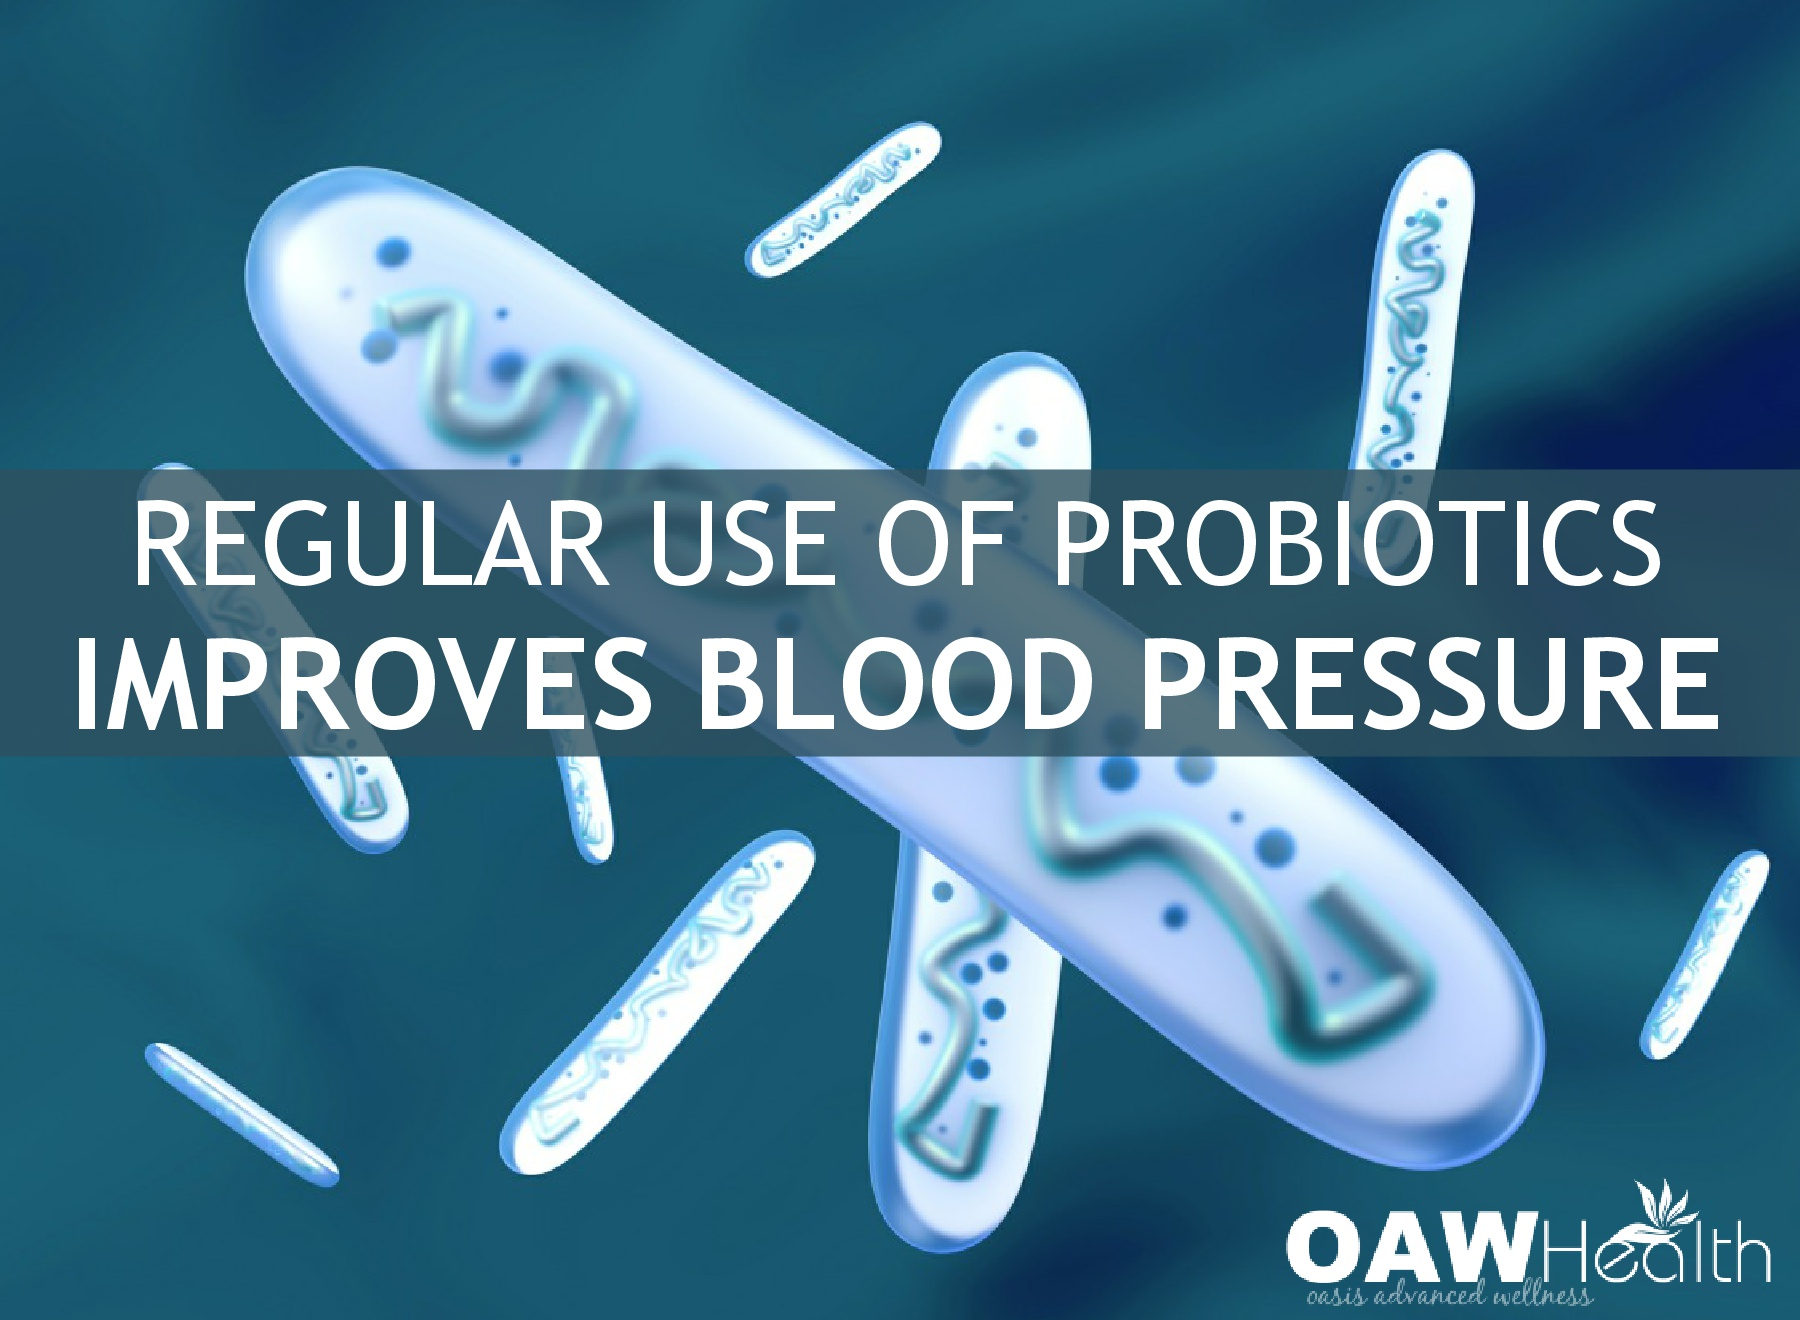 Regular Use of Probiotics Improves Blood Pressure